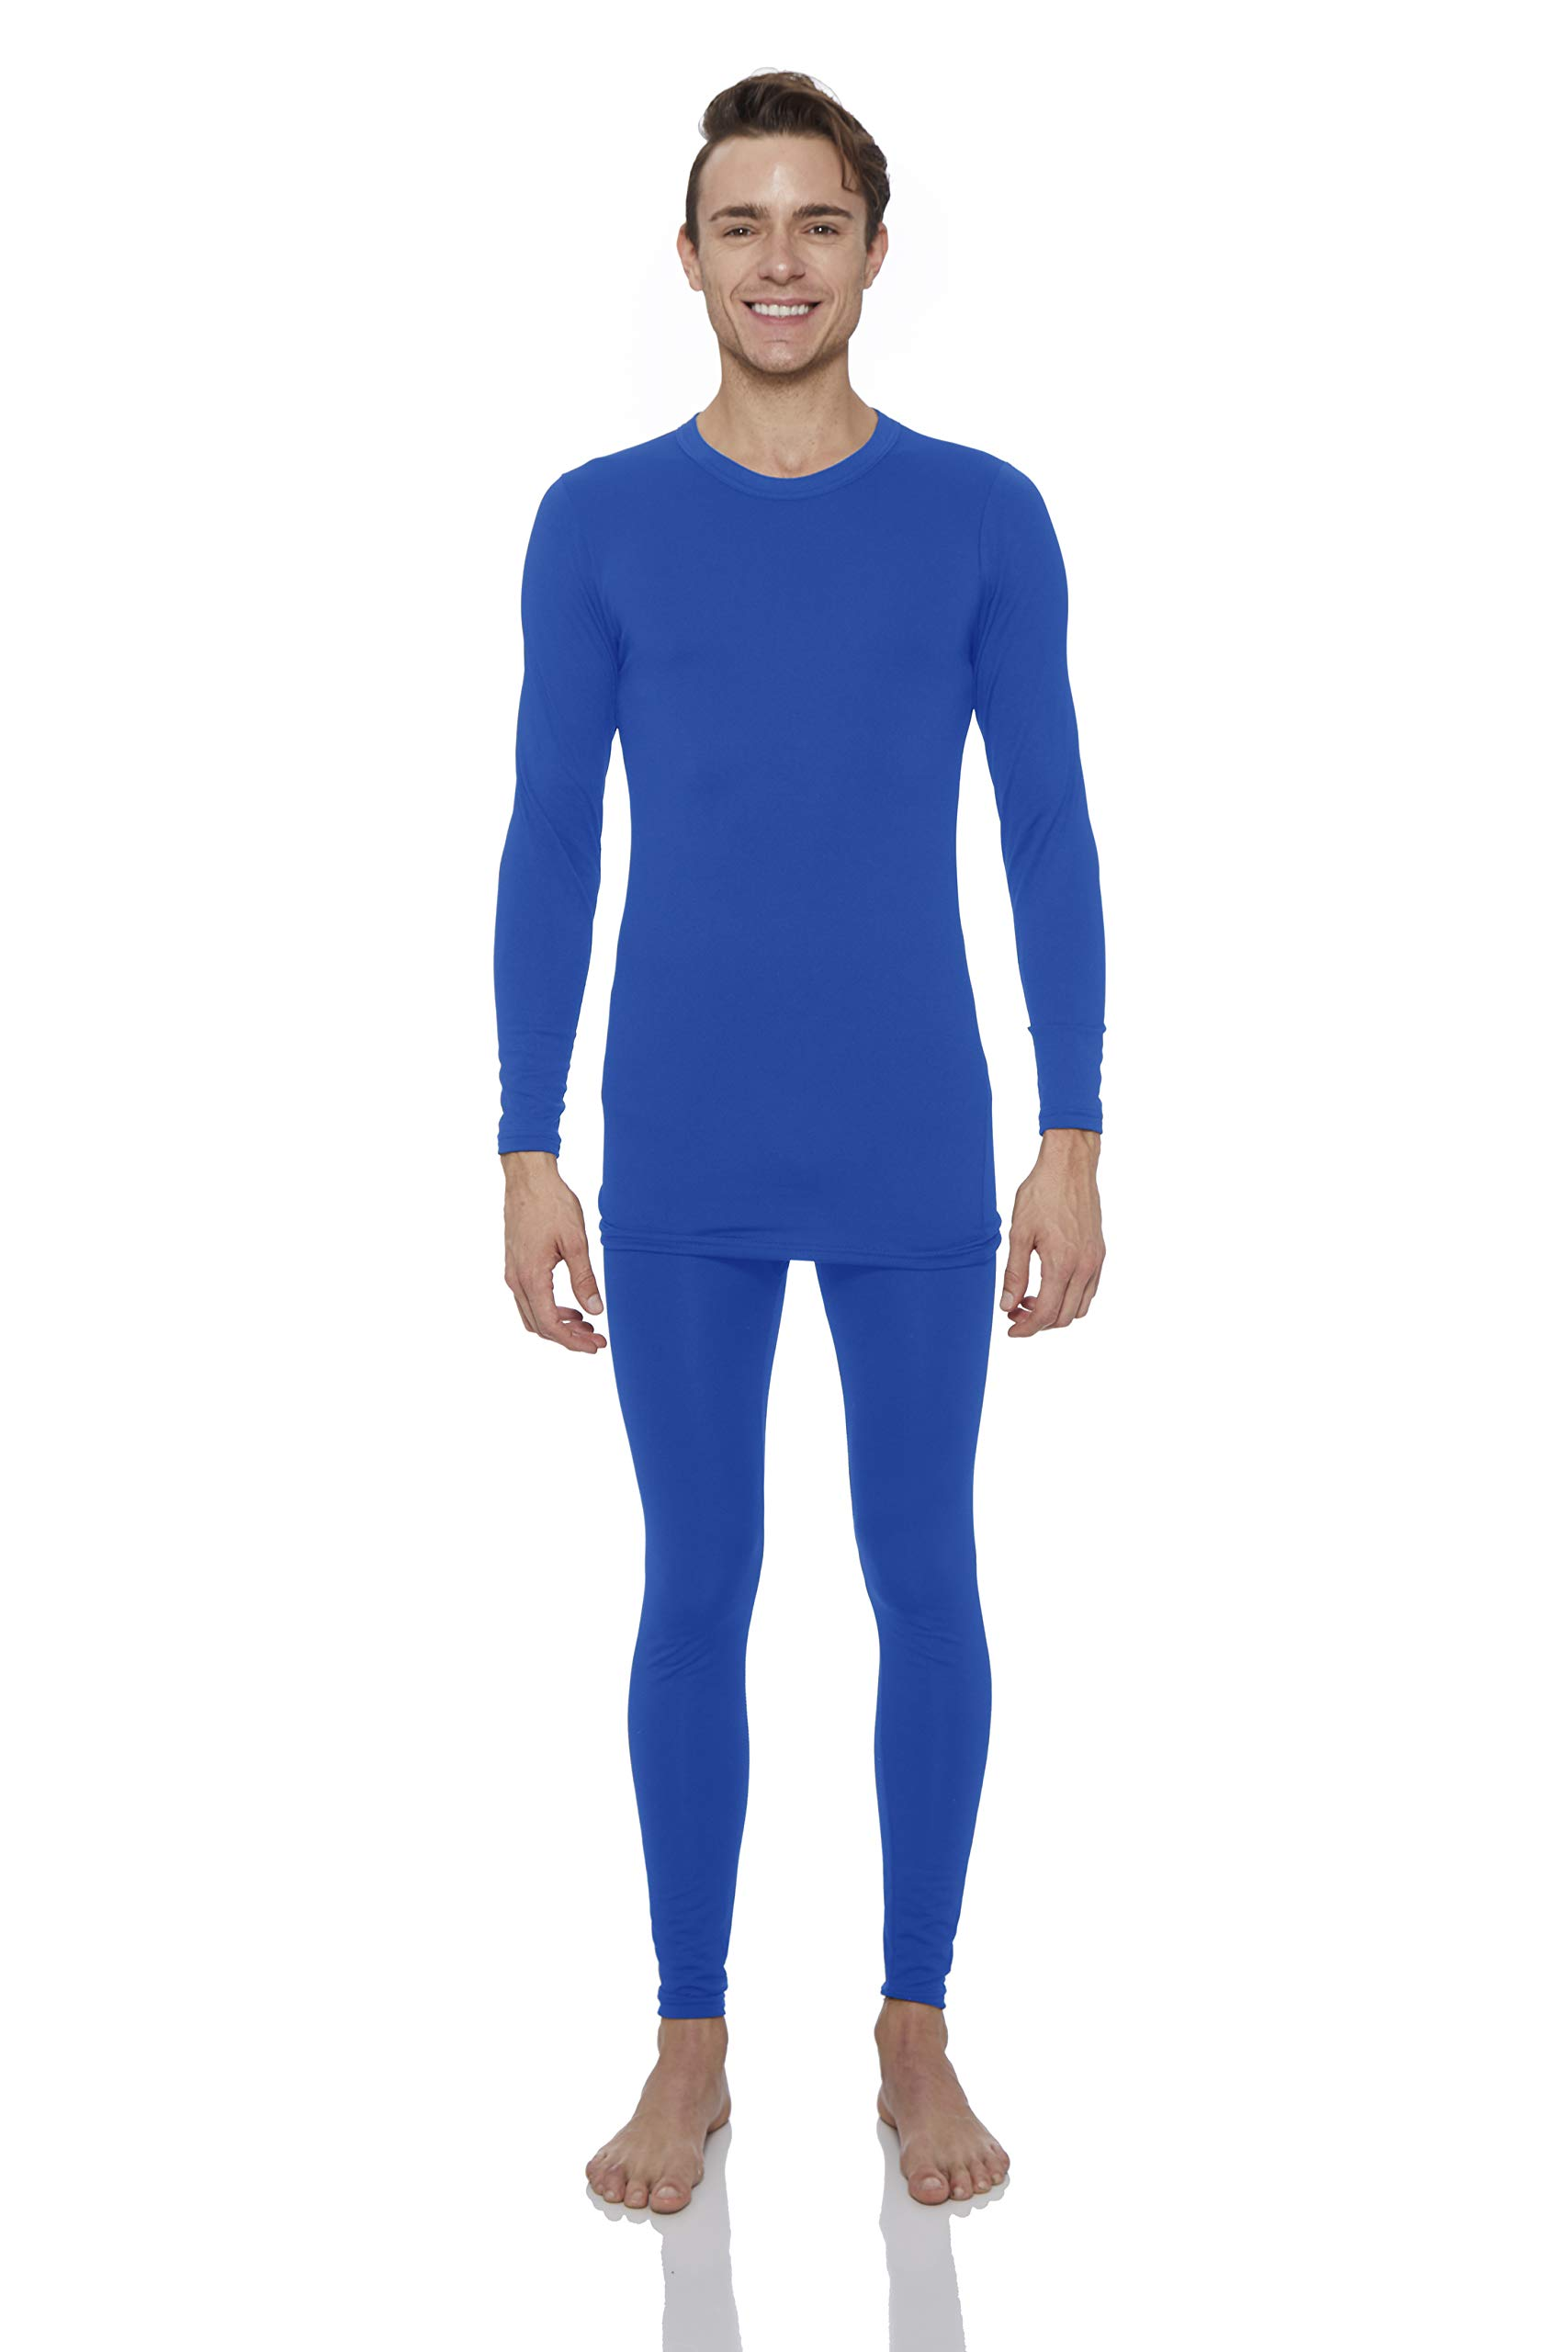 Rocky Thermal Underwear for Men Fleece Lined Thermals Men's Base Layer Long John Set Royal Blue by Rocky